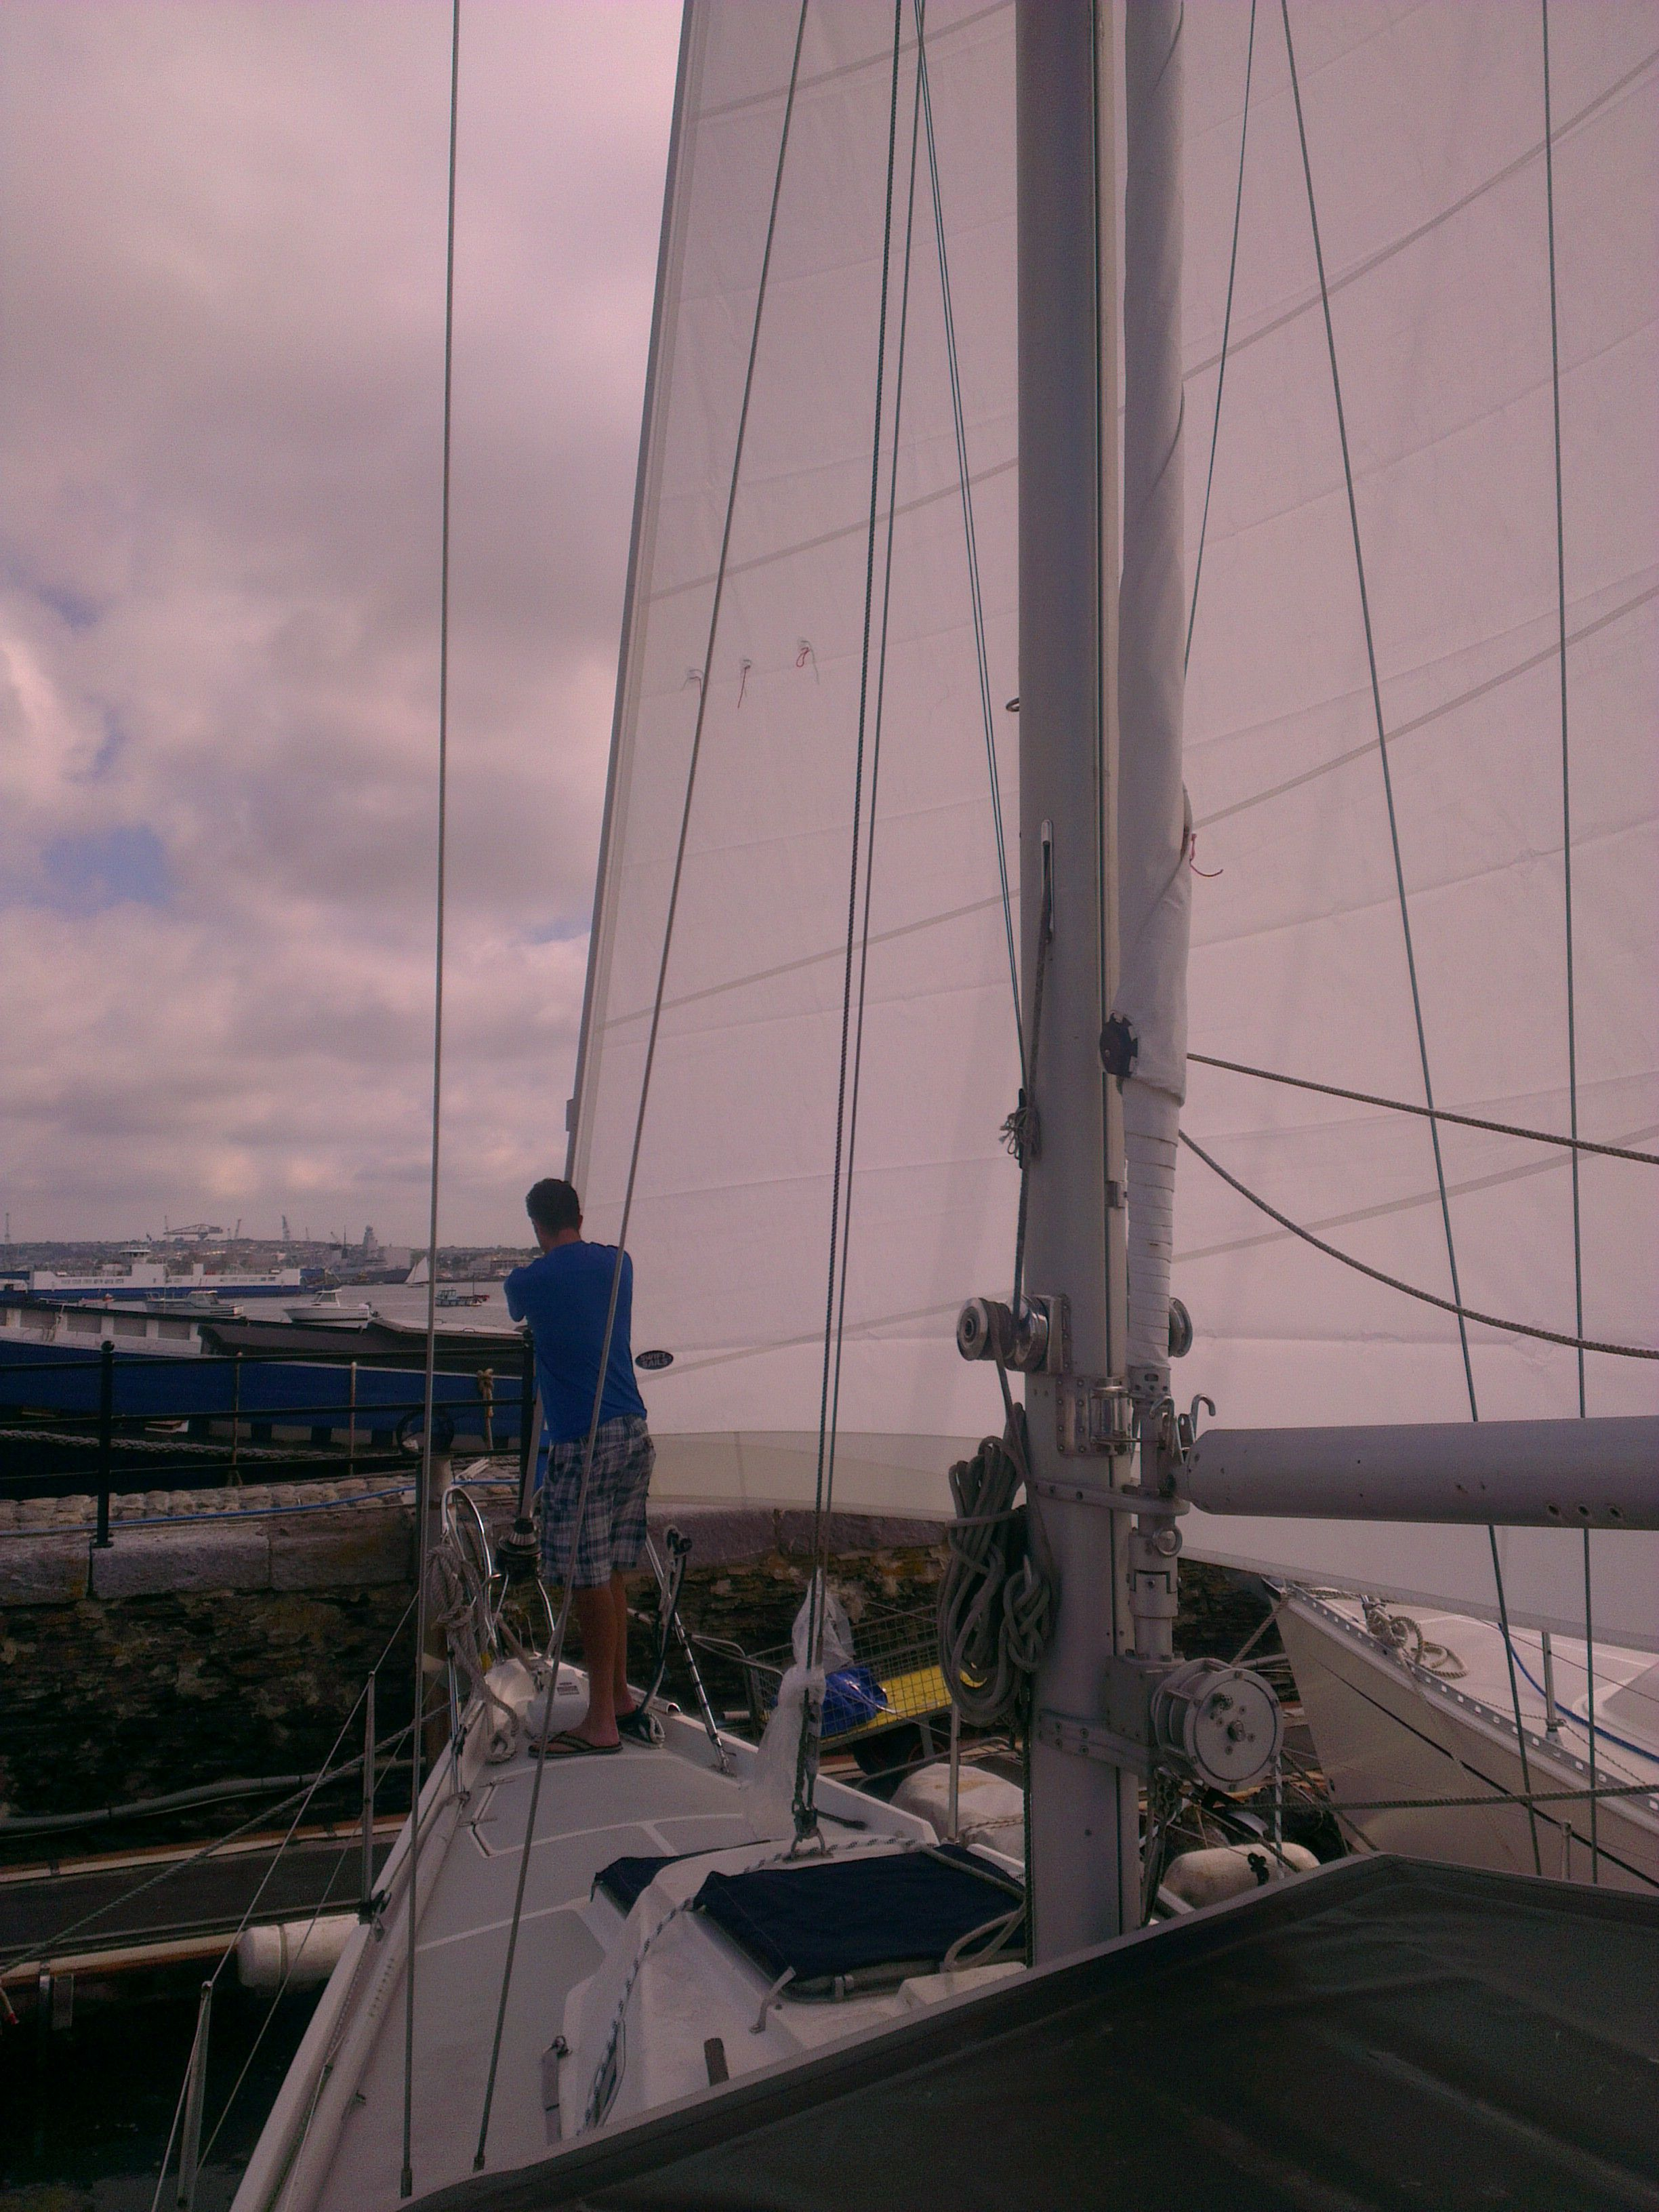 Check out this large new furling headsail for a Contest 34